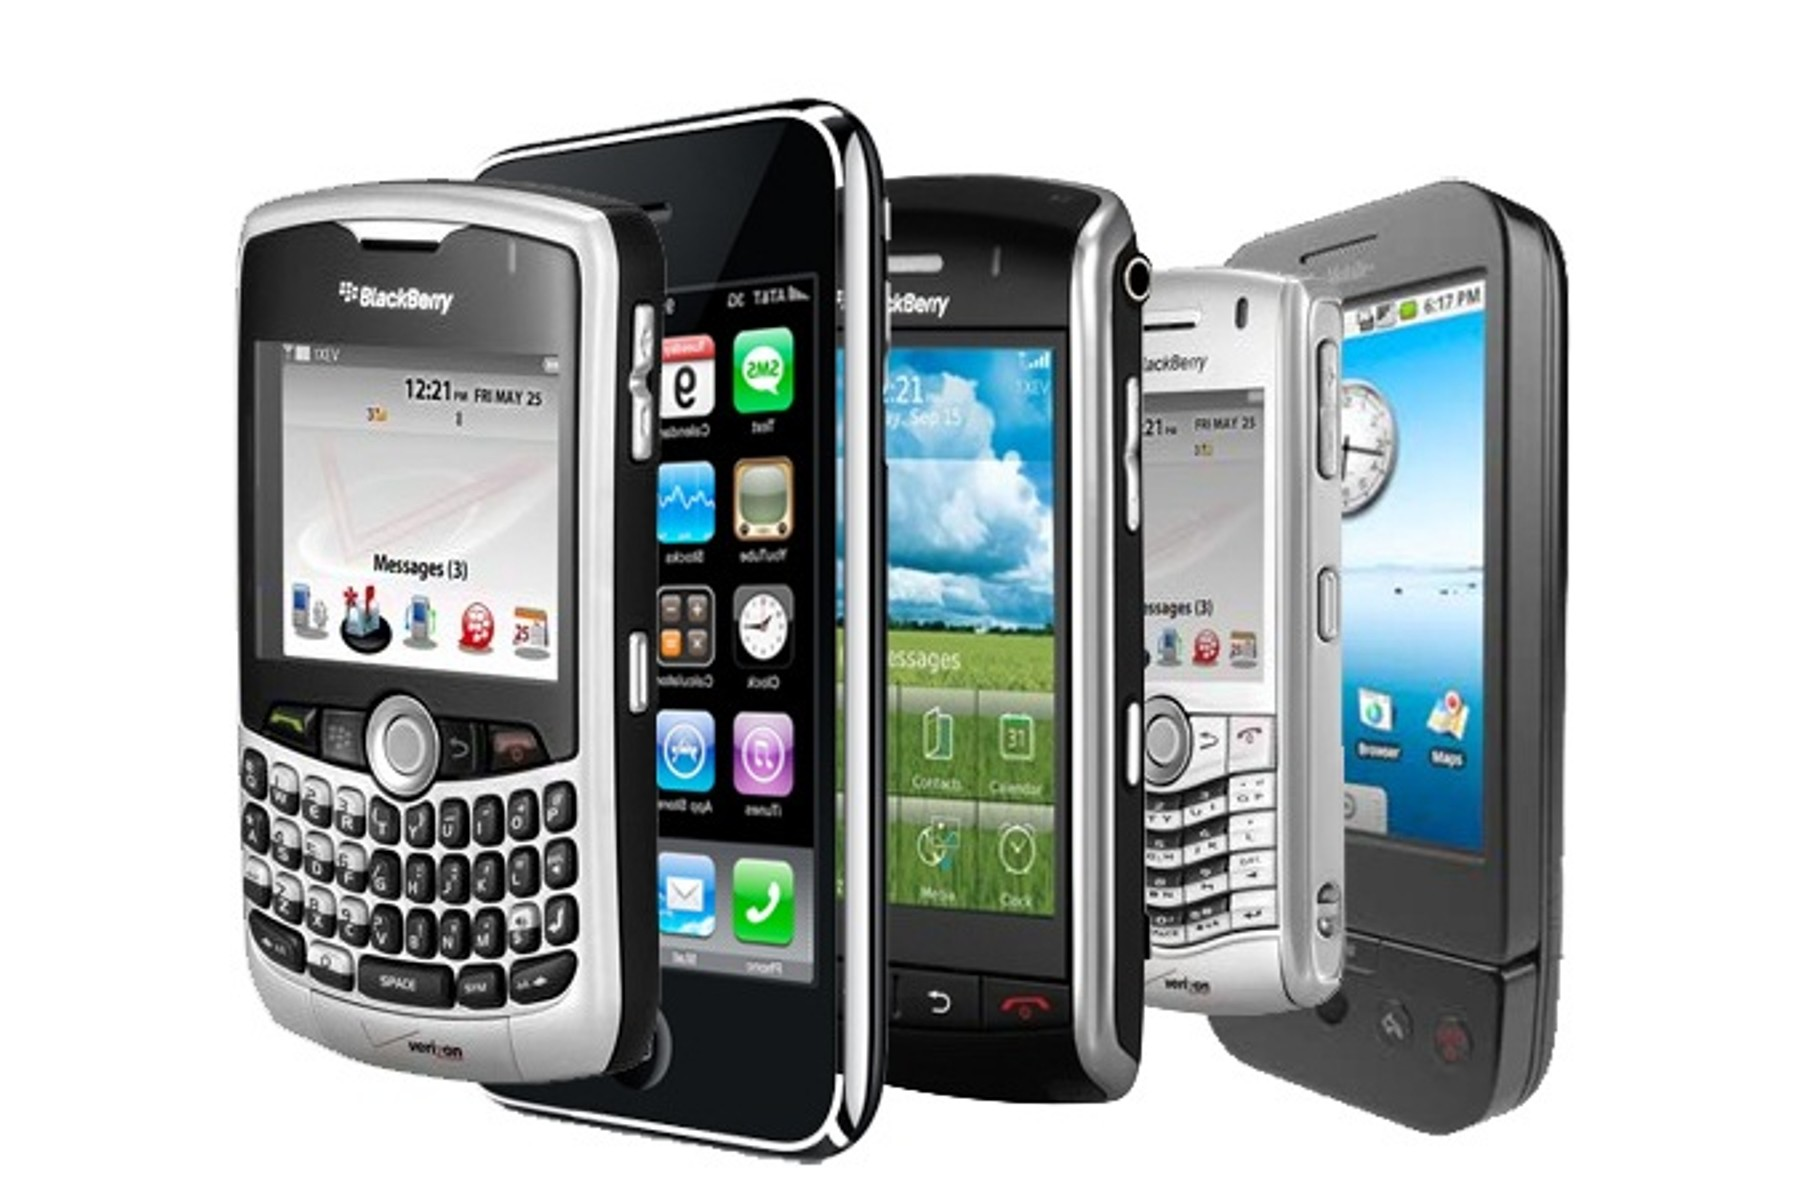 Phone S On The Mobile Compare Mobile Phones For The Best Deals Mobile Phones Uk